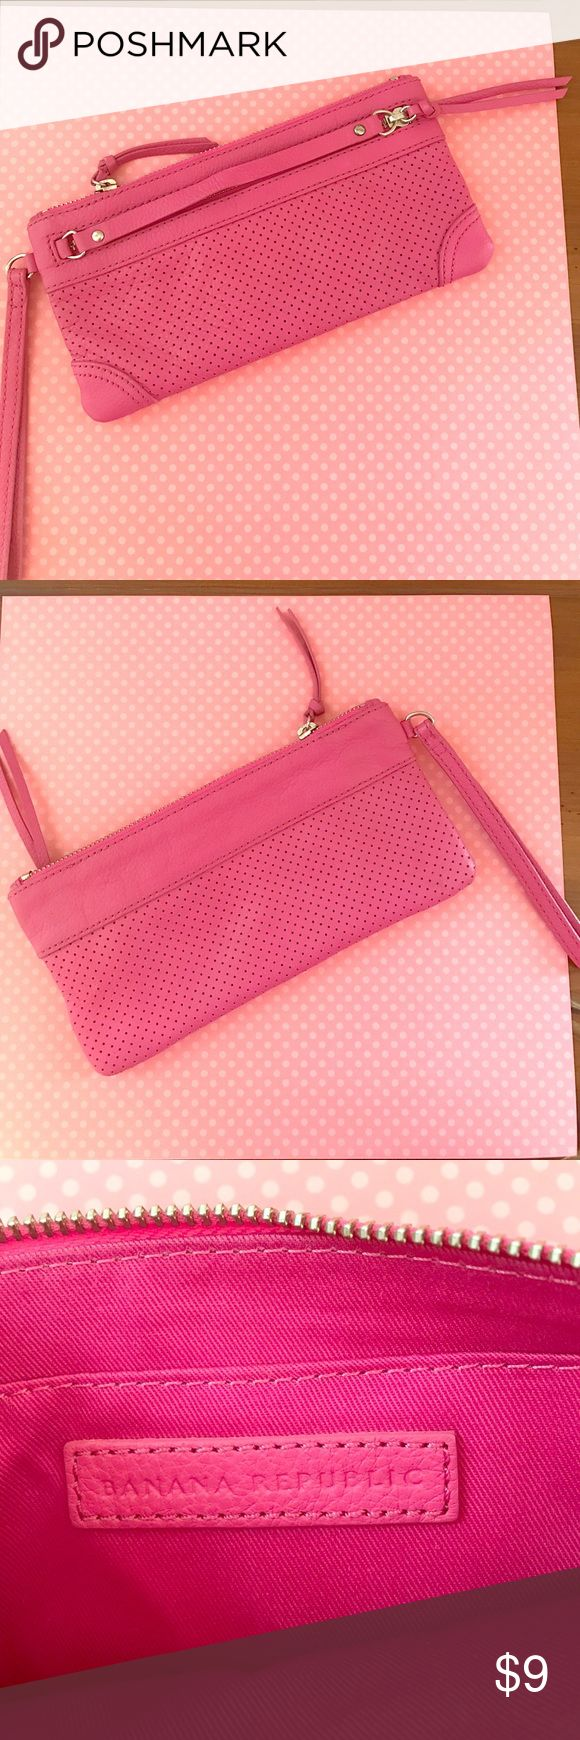 NWOT Banana Republic Mini Clutch Never used bright pink Banana Republic mini clutch. Perfect condition! 100% leather. Approx 9 X 4.5. Very stylish! Banana Republic Bags Clutches & Wristlets